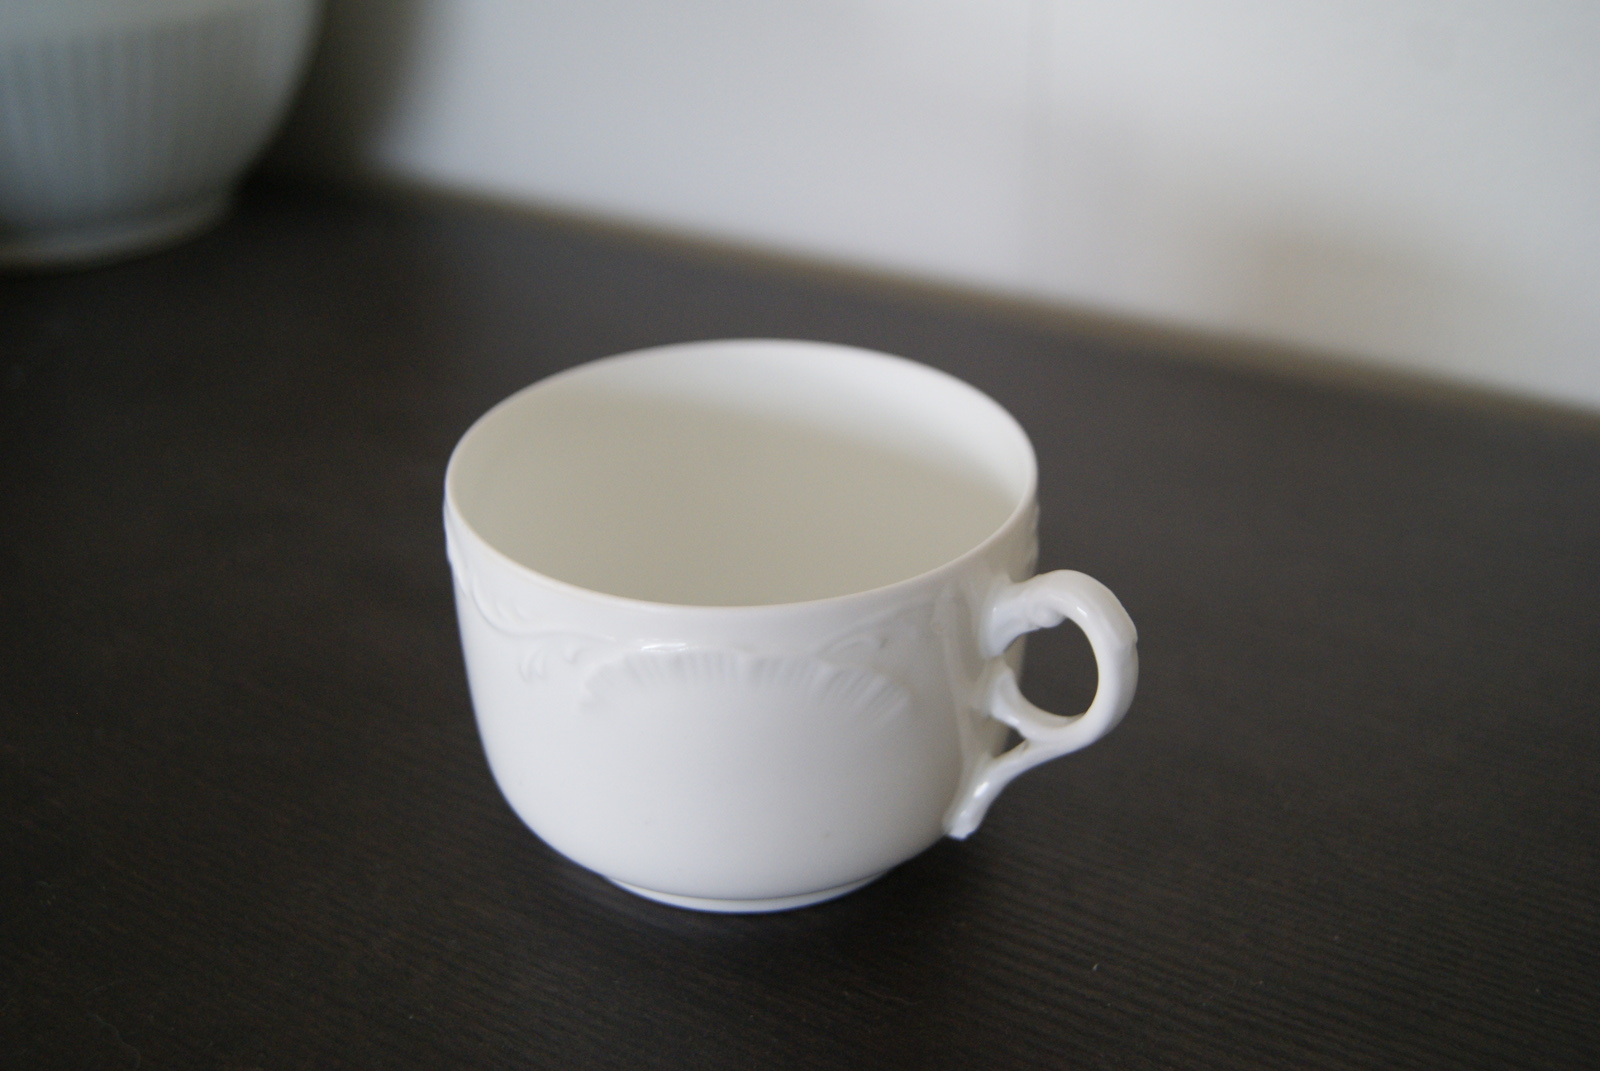 Porsgrund white cup with relief